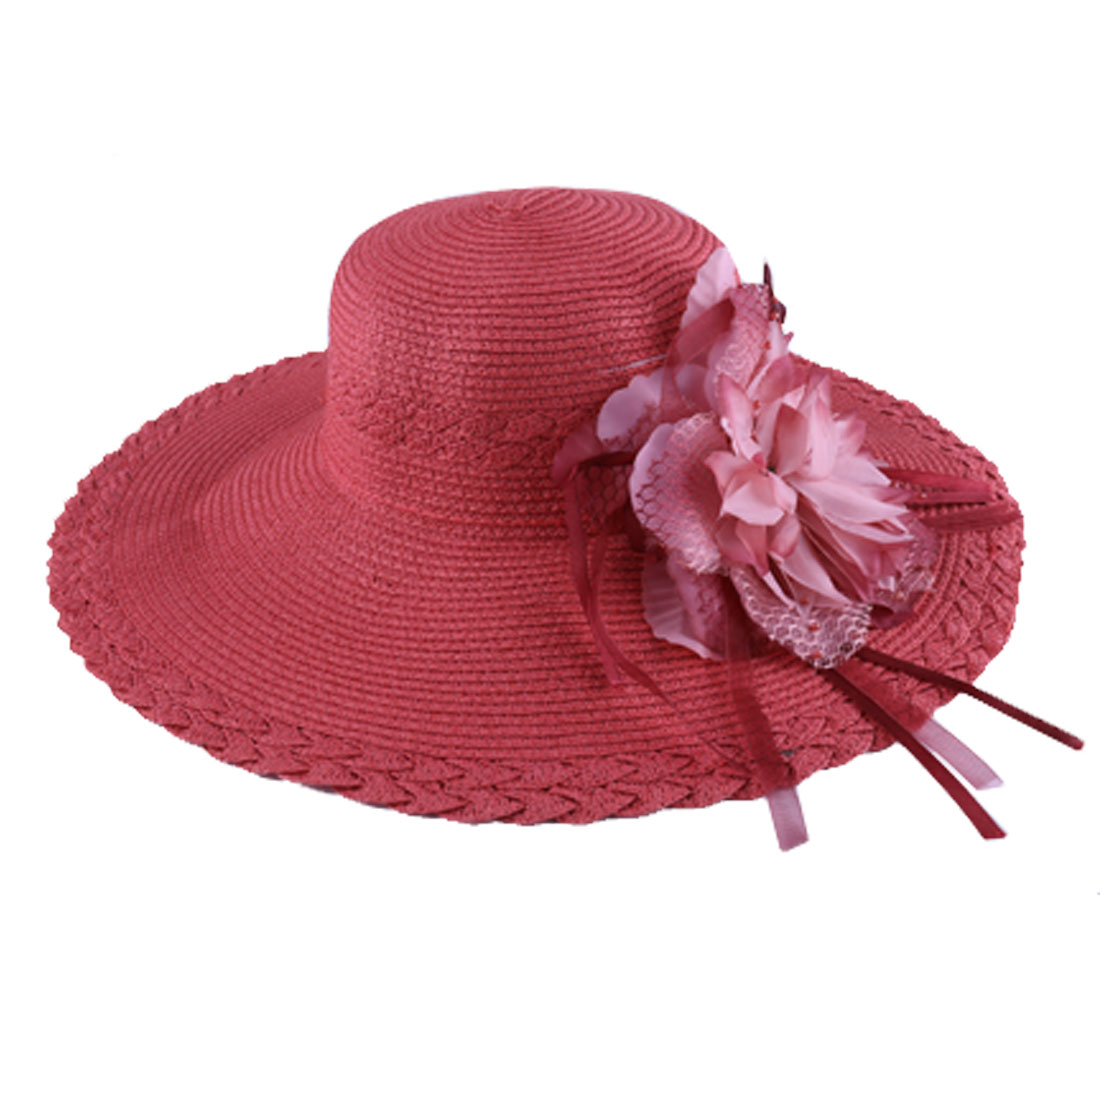 Ladies Wide Brim Flower Embellished Beach Sun Hat Brick Red